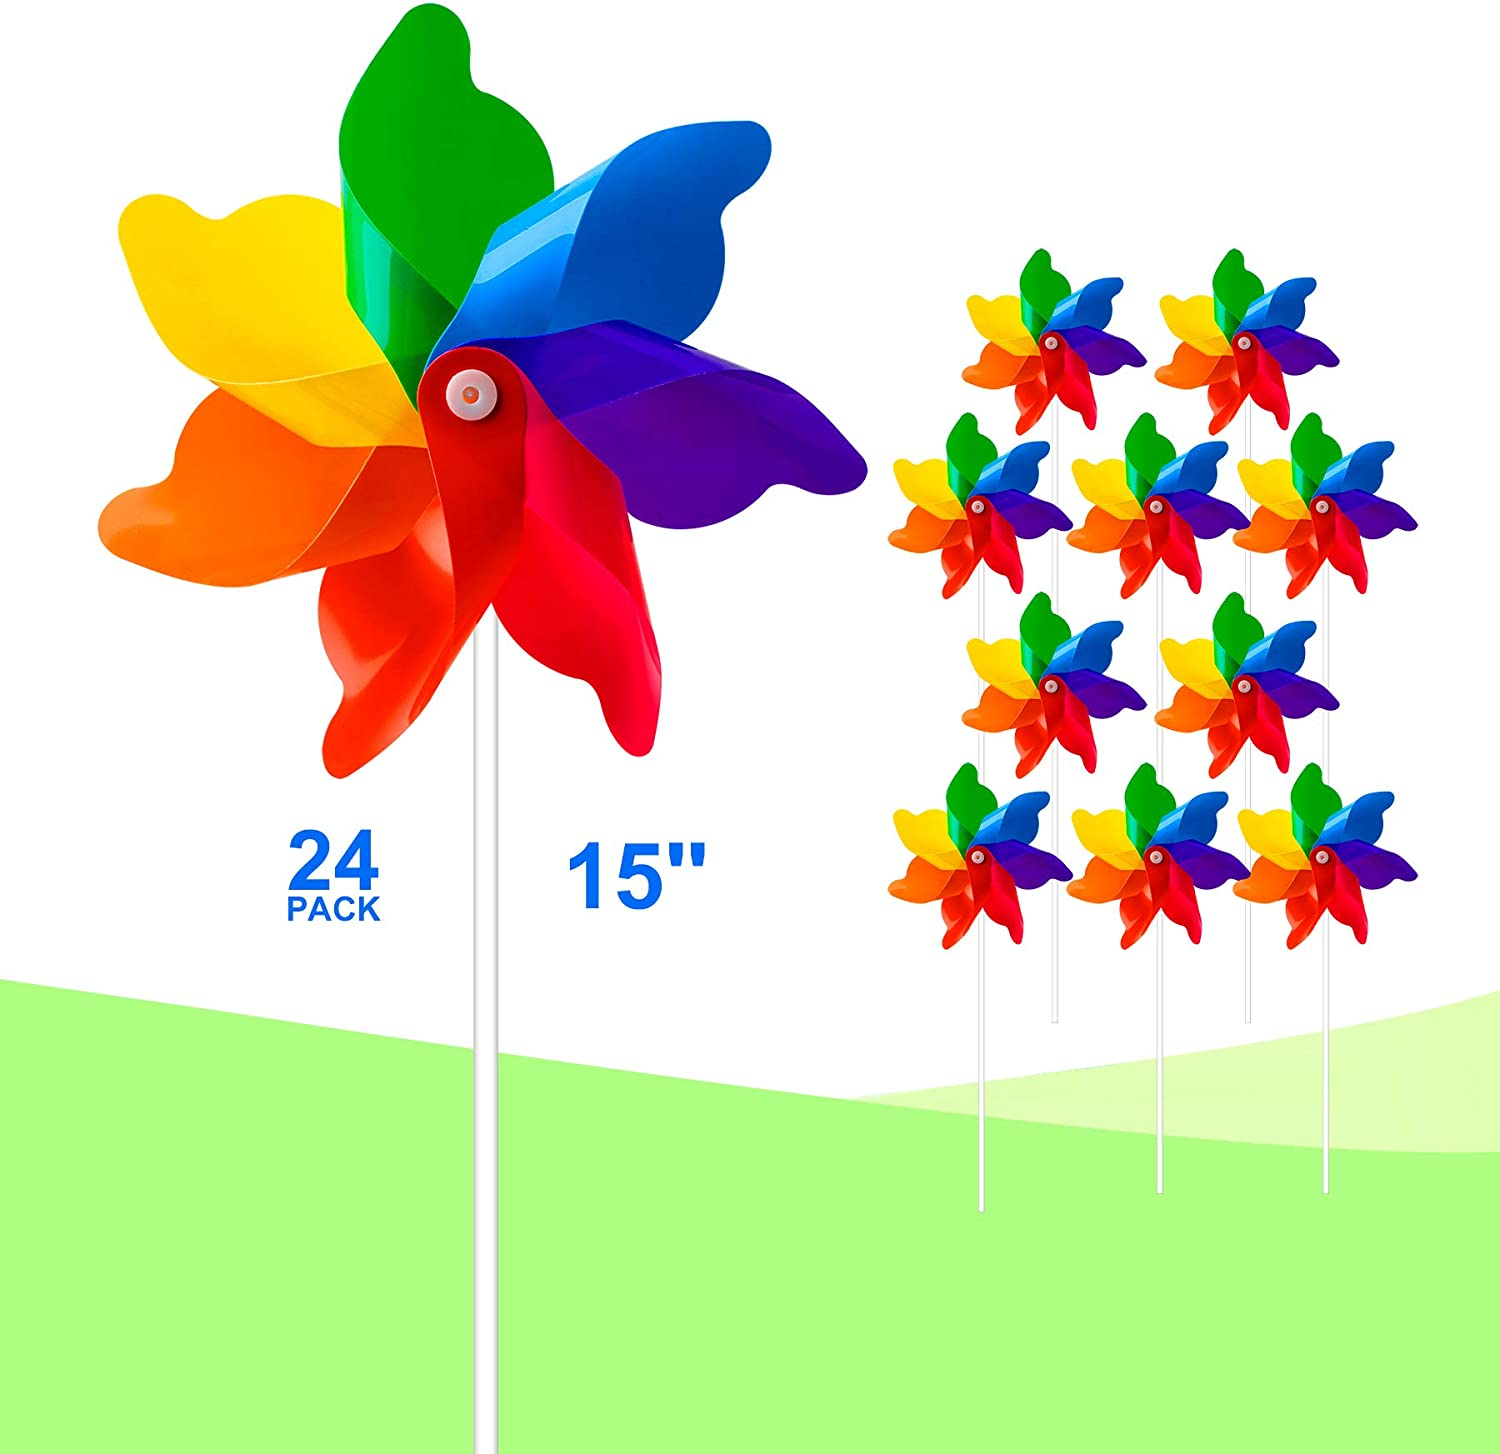 Tsocent 7 Colors Mixed Pinwheels (Pack of 24) - Party Favors Plastic Toy Pinwheels Educational Wind Spinners 24 Pcs Gifts for Kids - Outdoor Decorational Pinwheels Windmill for Yard and Garden